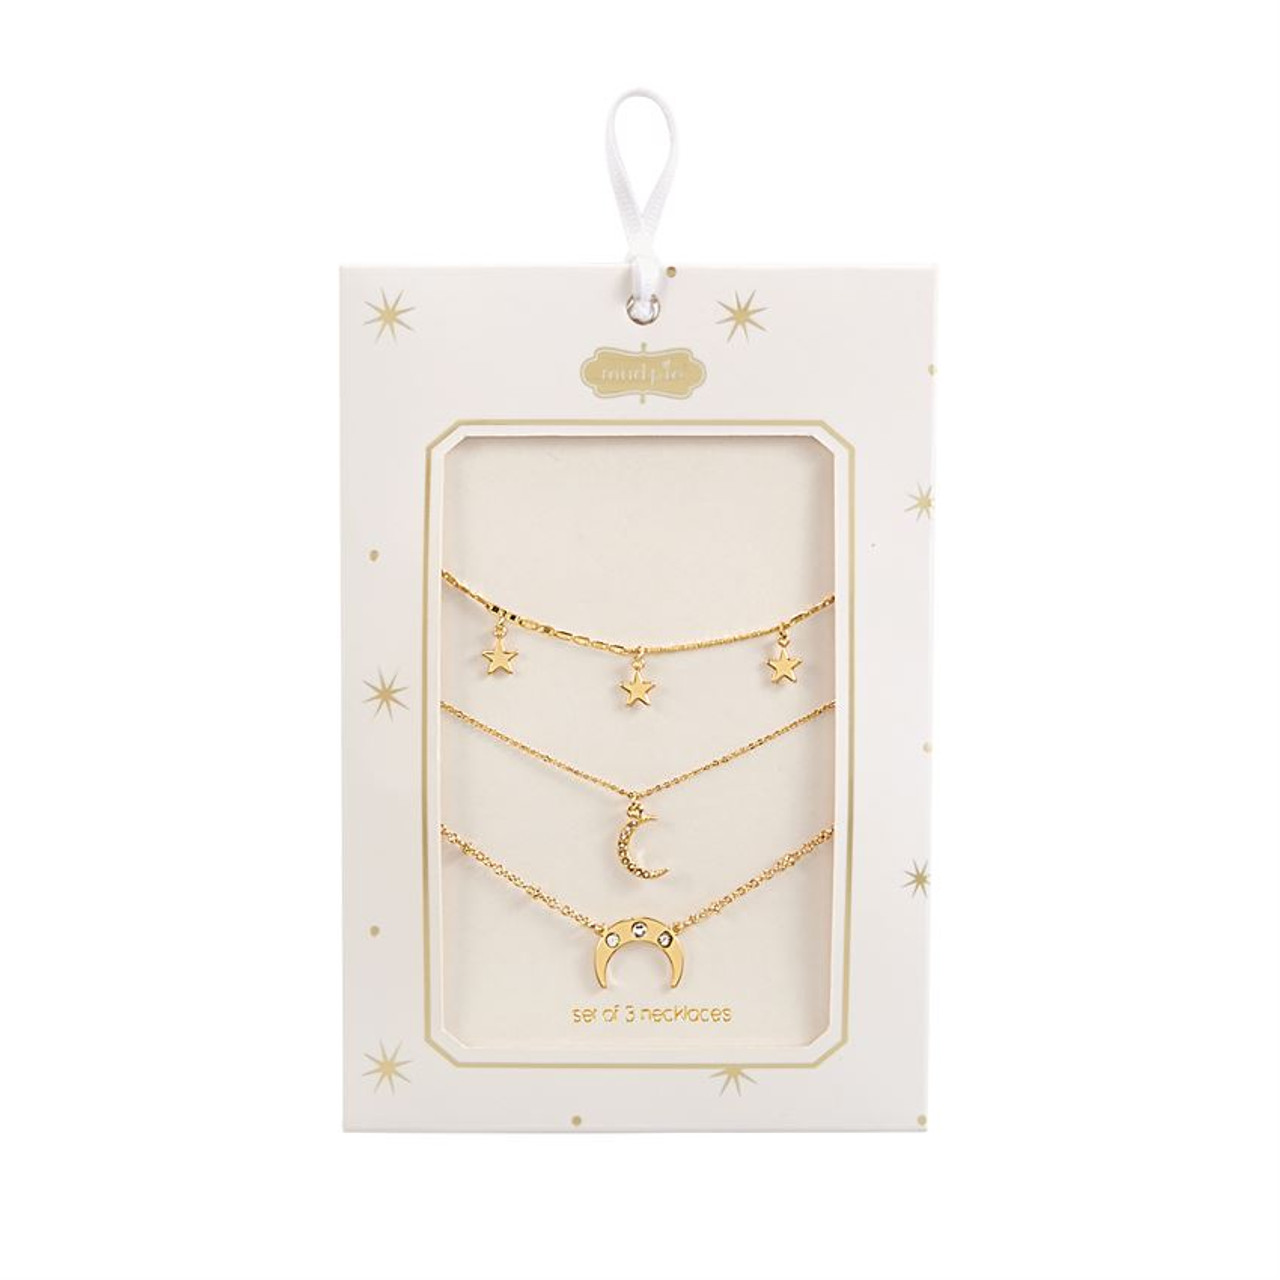 Includes three different gold metal chain necklaces with delicate moon and star pendants. Can be worn individually or layered together.  Available in 3 styles: Crescent, Moon or Stars.  Comes in gift-ready packaging.